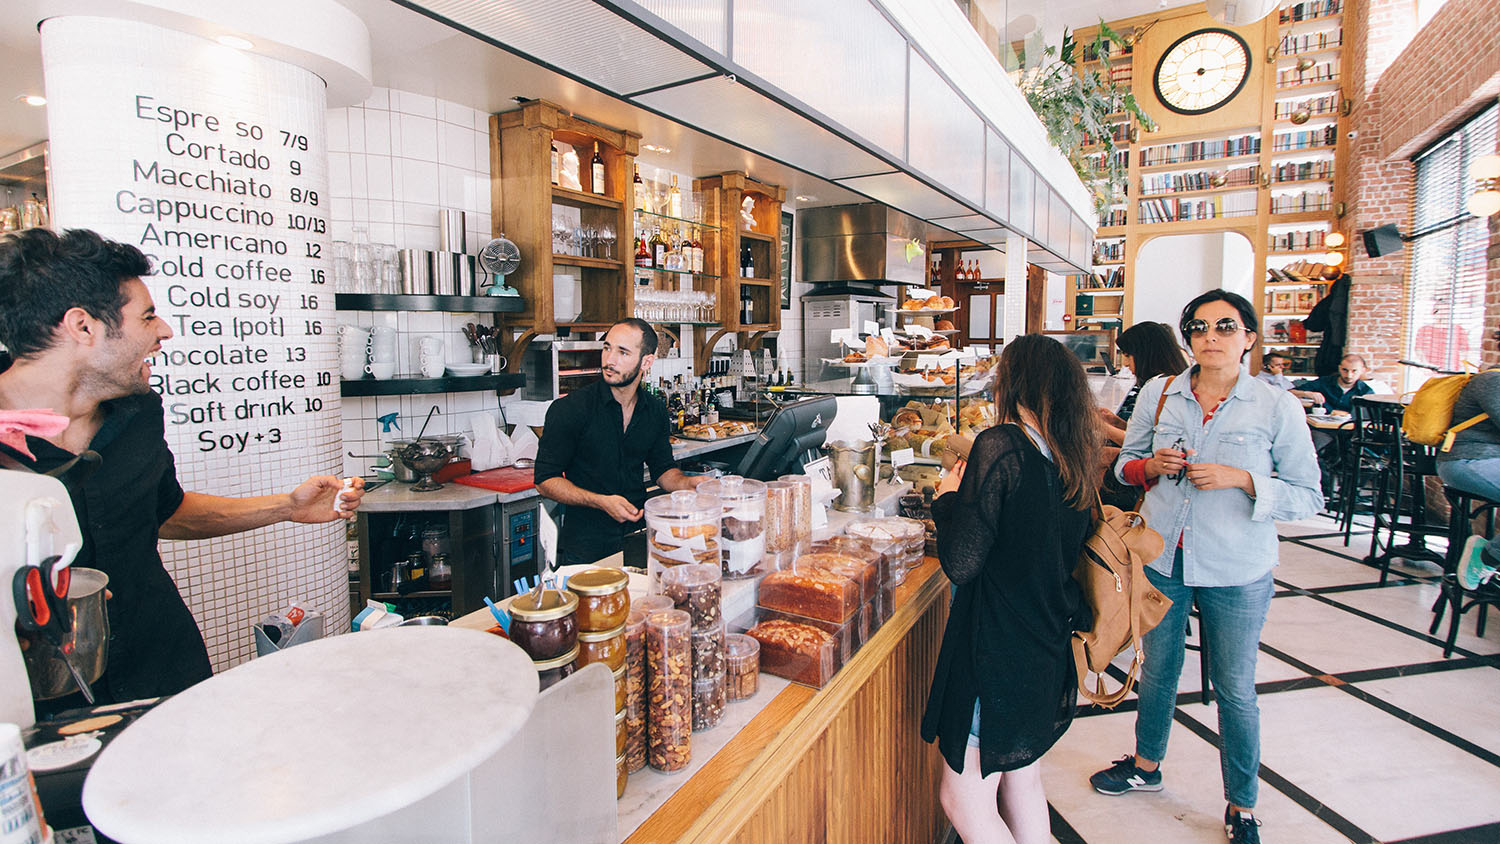 15 Ways Small Businesses Can Attract New Employees